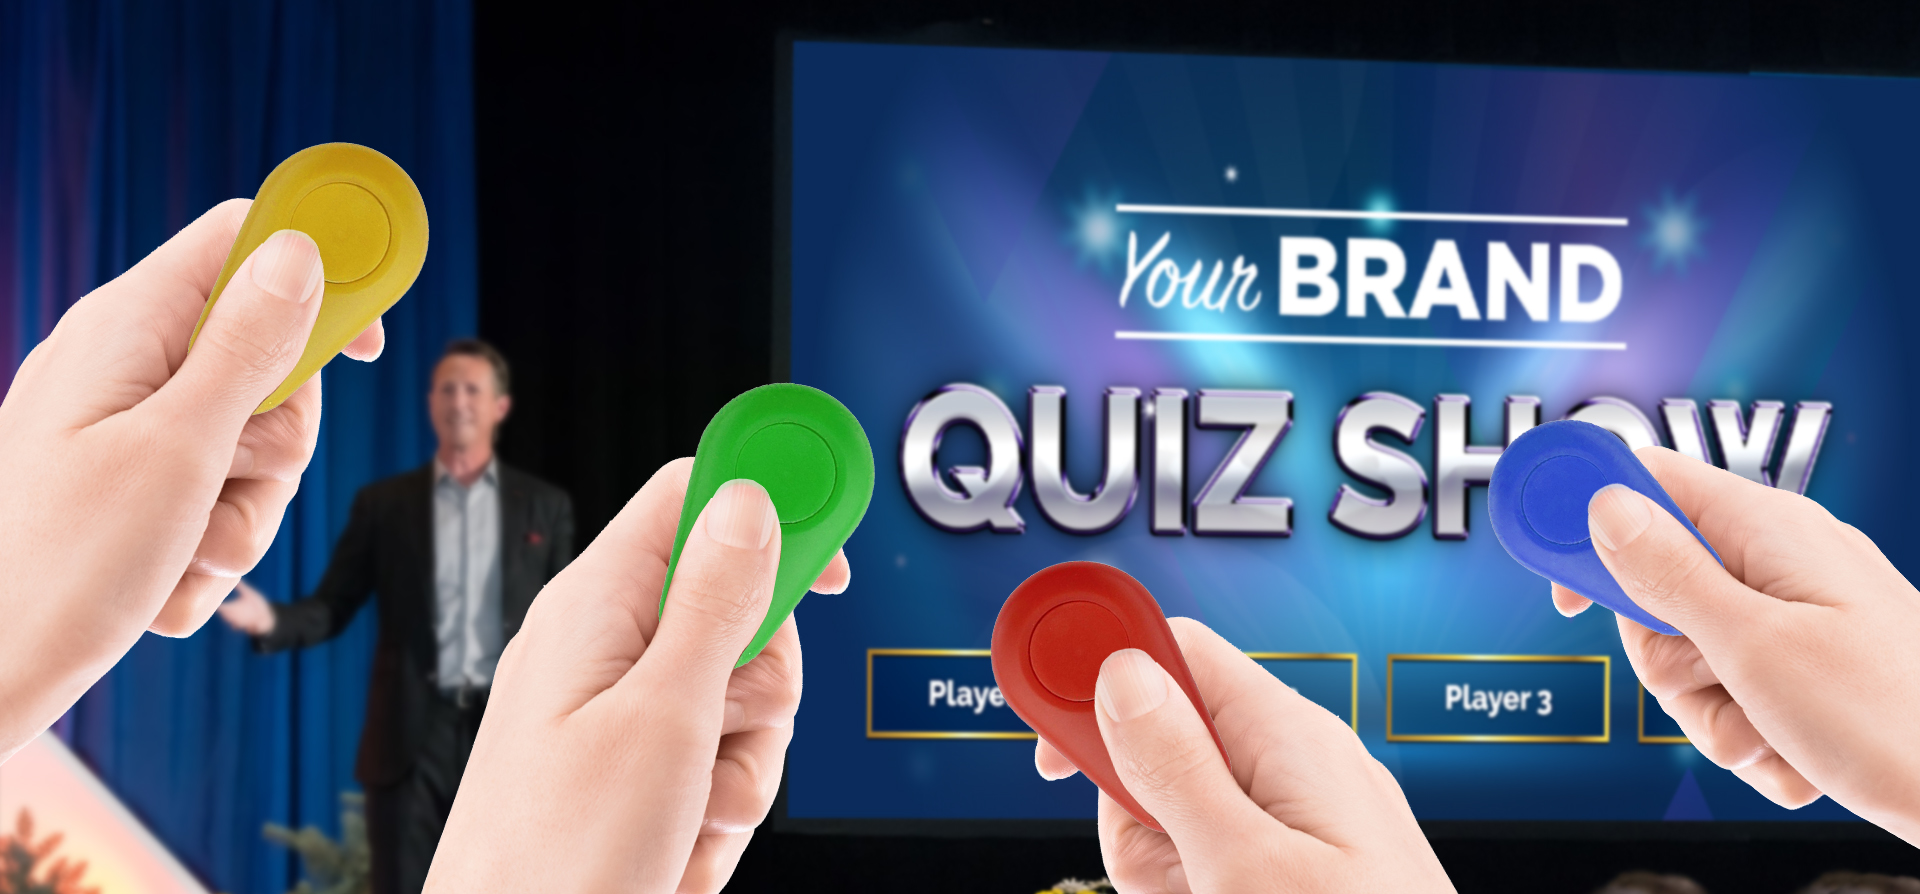 customisable_activation_game_developer_sydney_quiz_show_bluetooth_buzzer_ios_screen_multiplayer_6